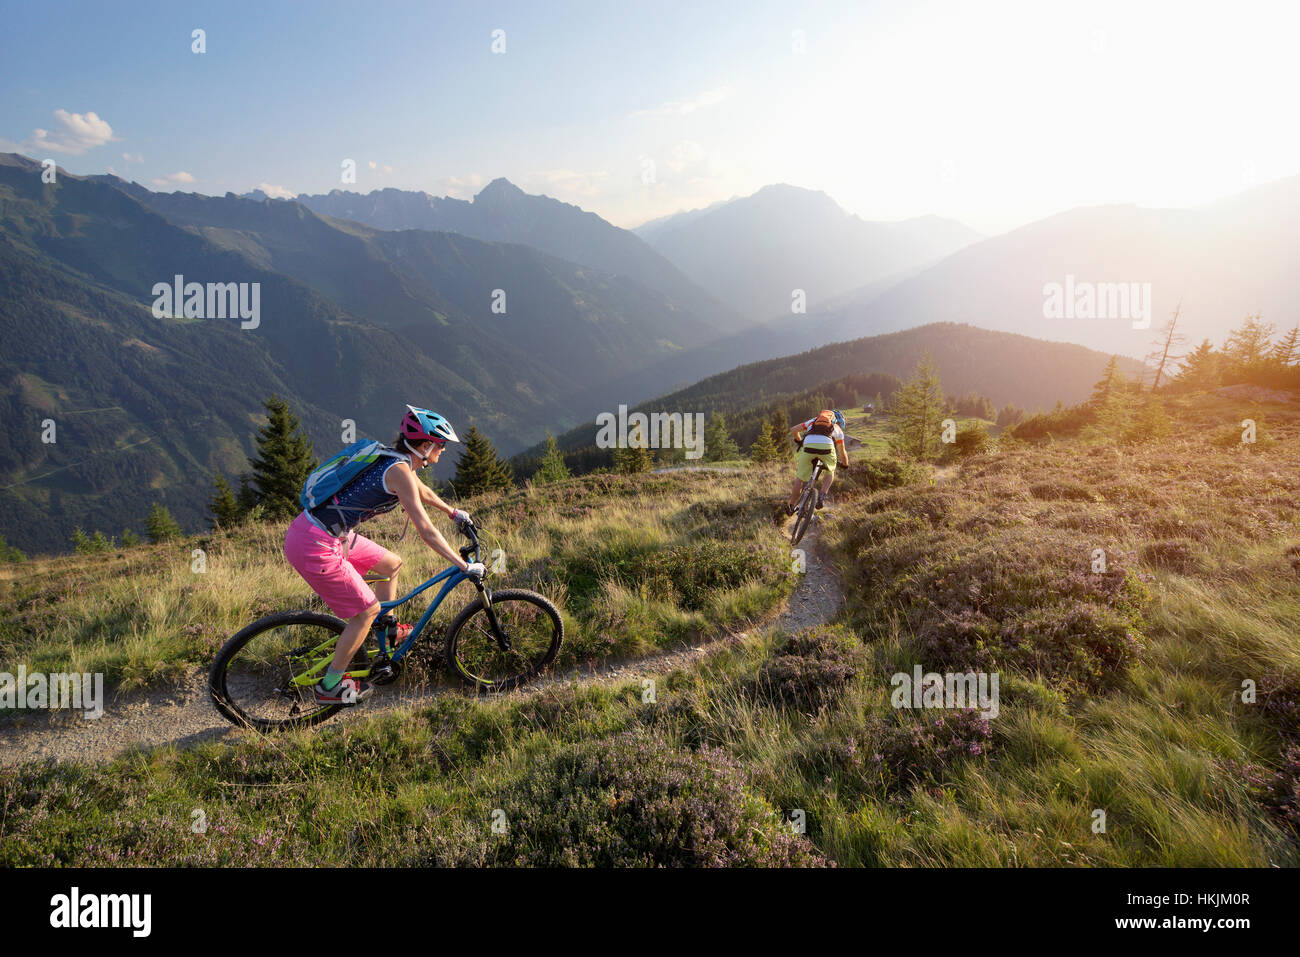 Two mountain bikers riding on hill in alpine landscape, Zillertal, Tyrol, Austria - Stock Image